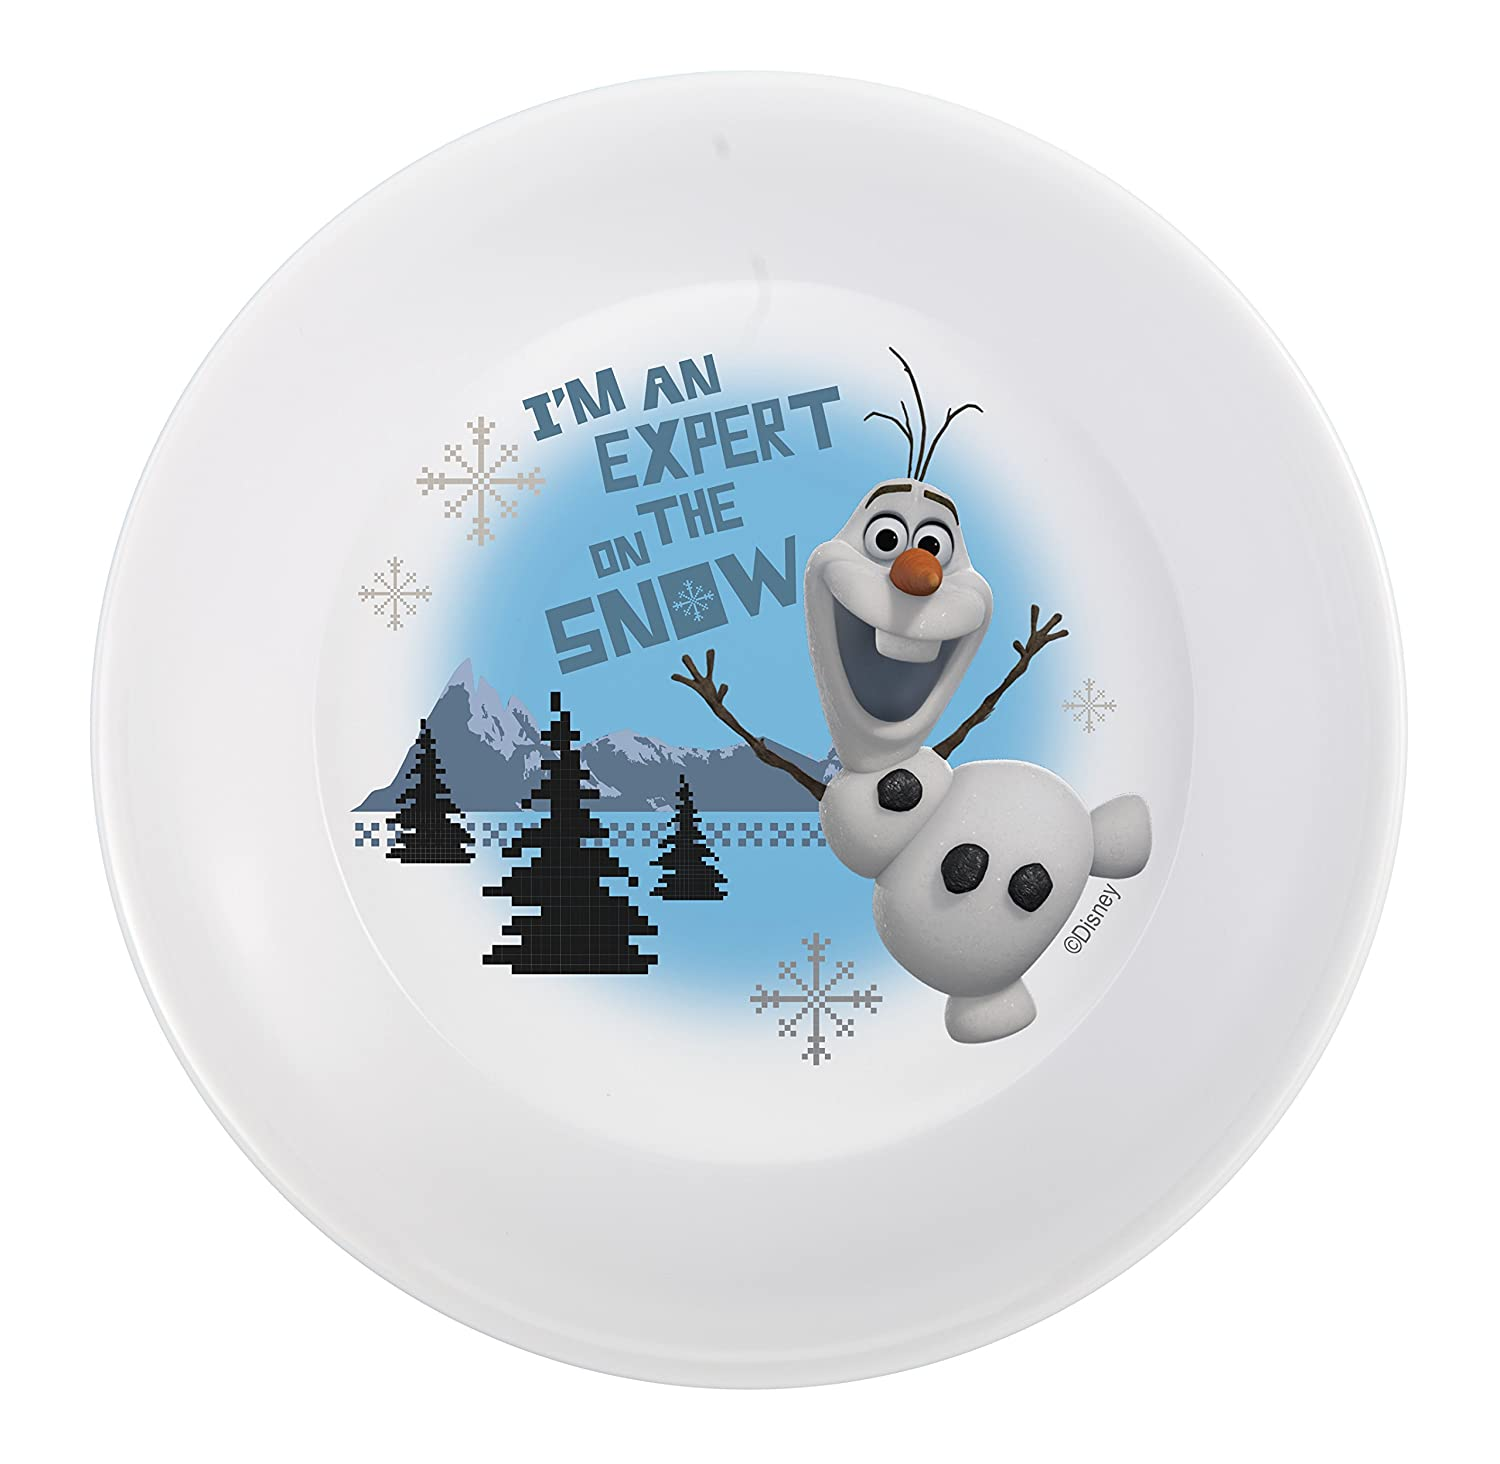 Designs Mealtime Set with Plate Bowl and Tumbler featuring Olaf u0026 Sven from Frozen Break-resistant and BPA-free plastic 3 Piece Set Bowls  sc 1 st  Amazon.com & Amazon.com | Zak! Designs Mealtime Set with Plate Bowl and Tumbler ...